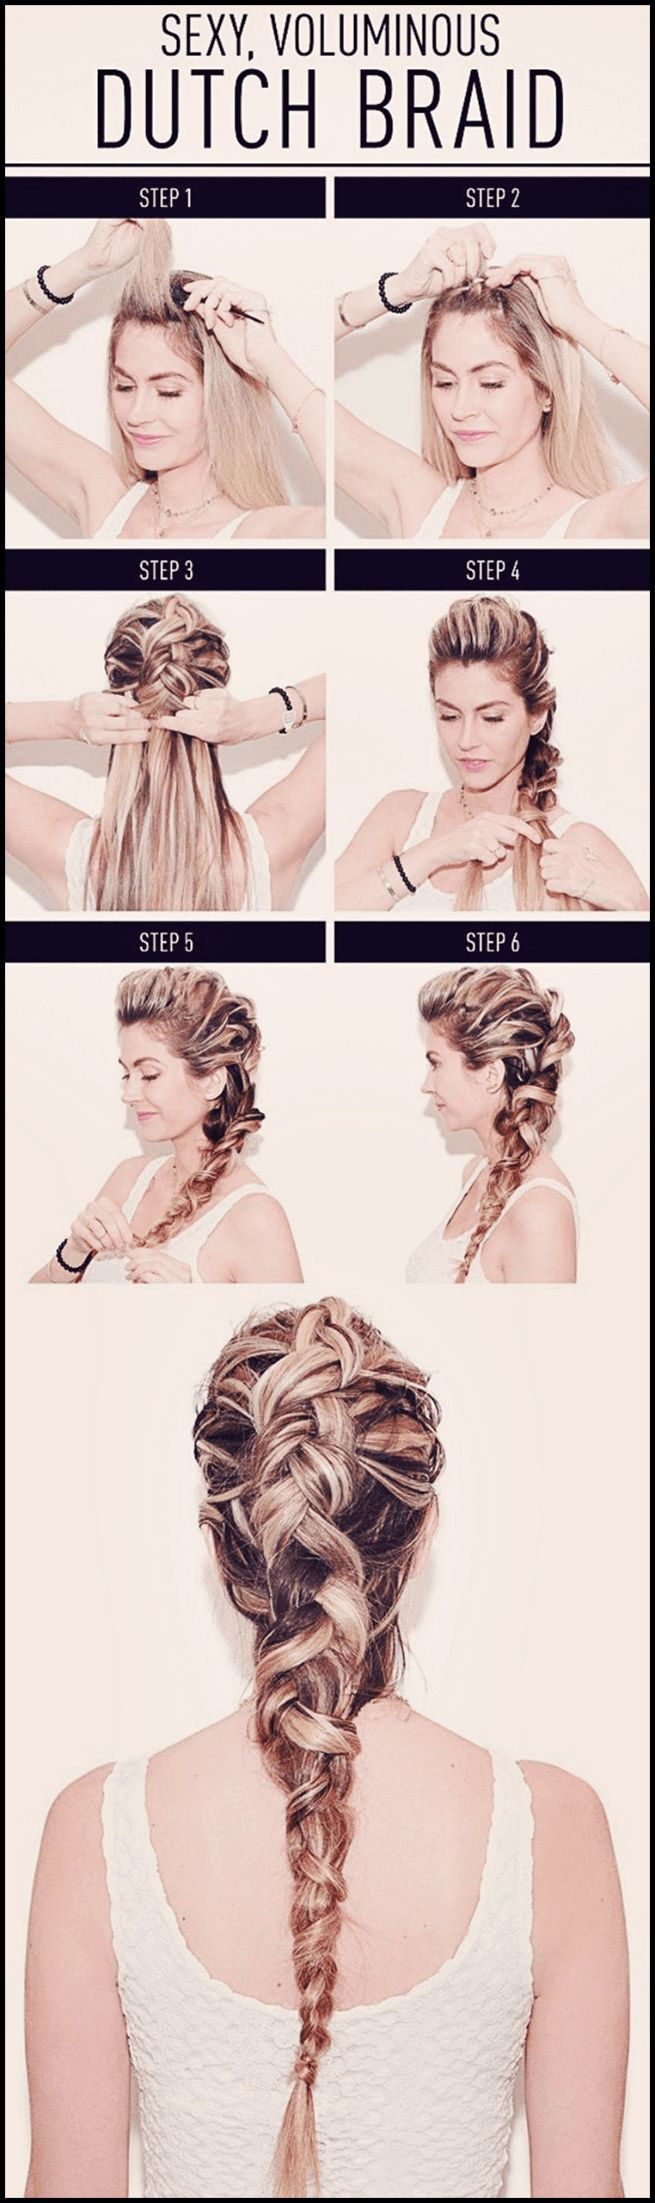 Pull off a cool yet sexy look anytime with the dutch braid.